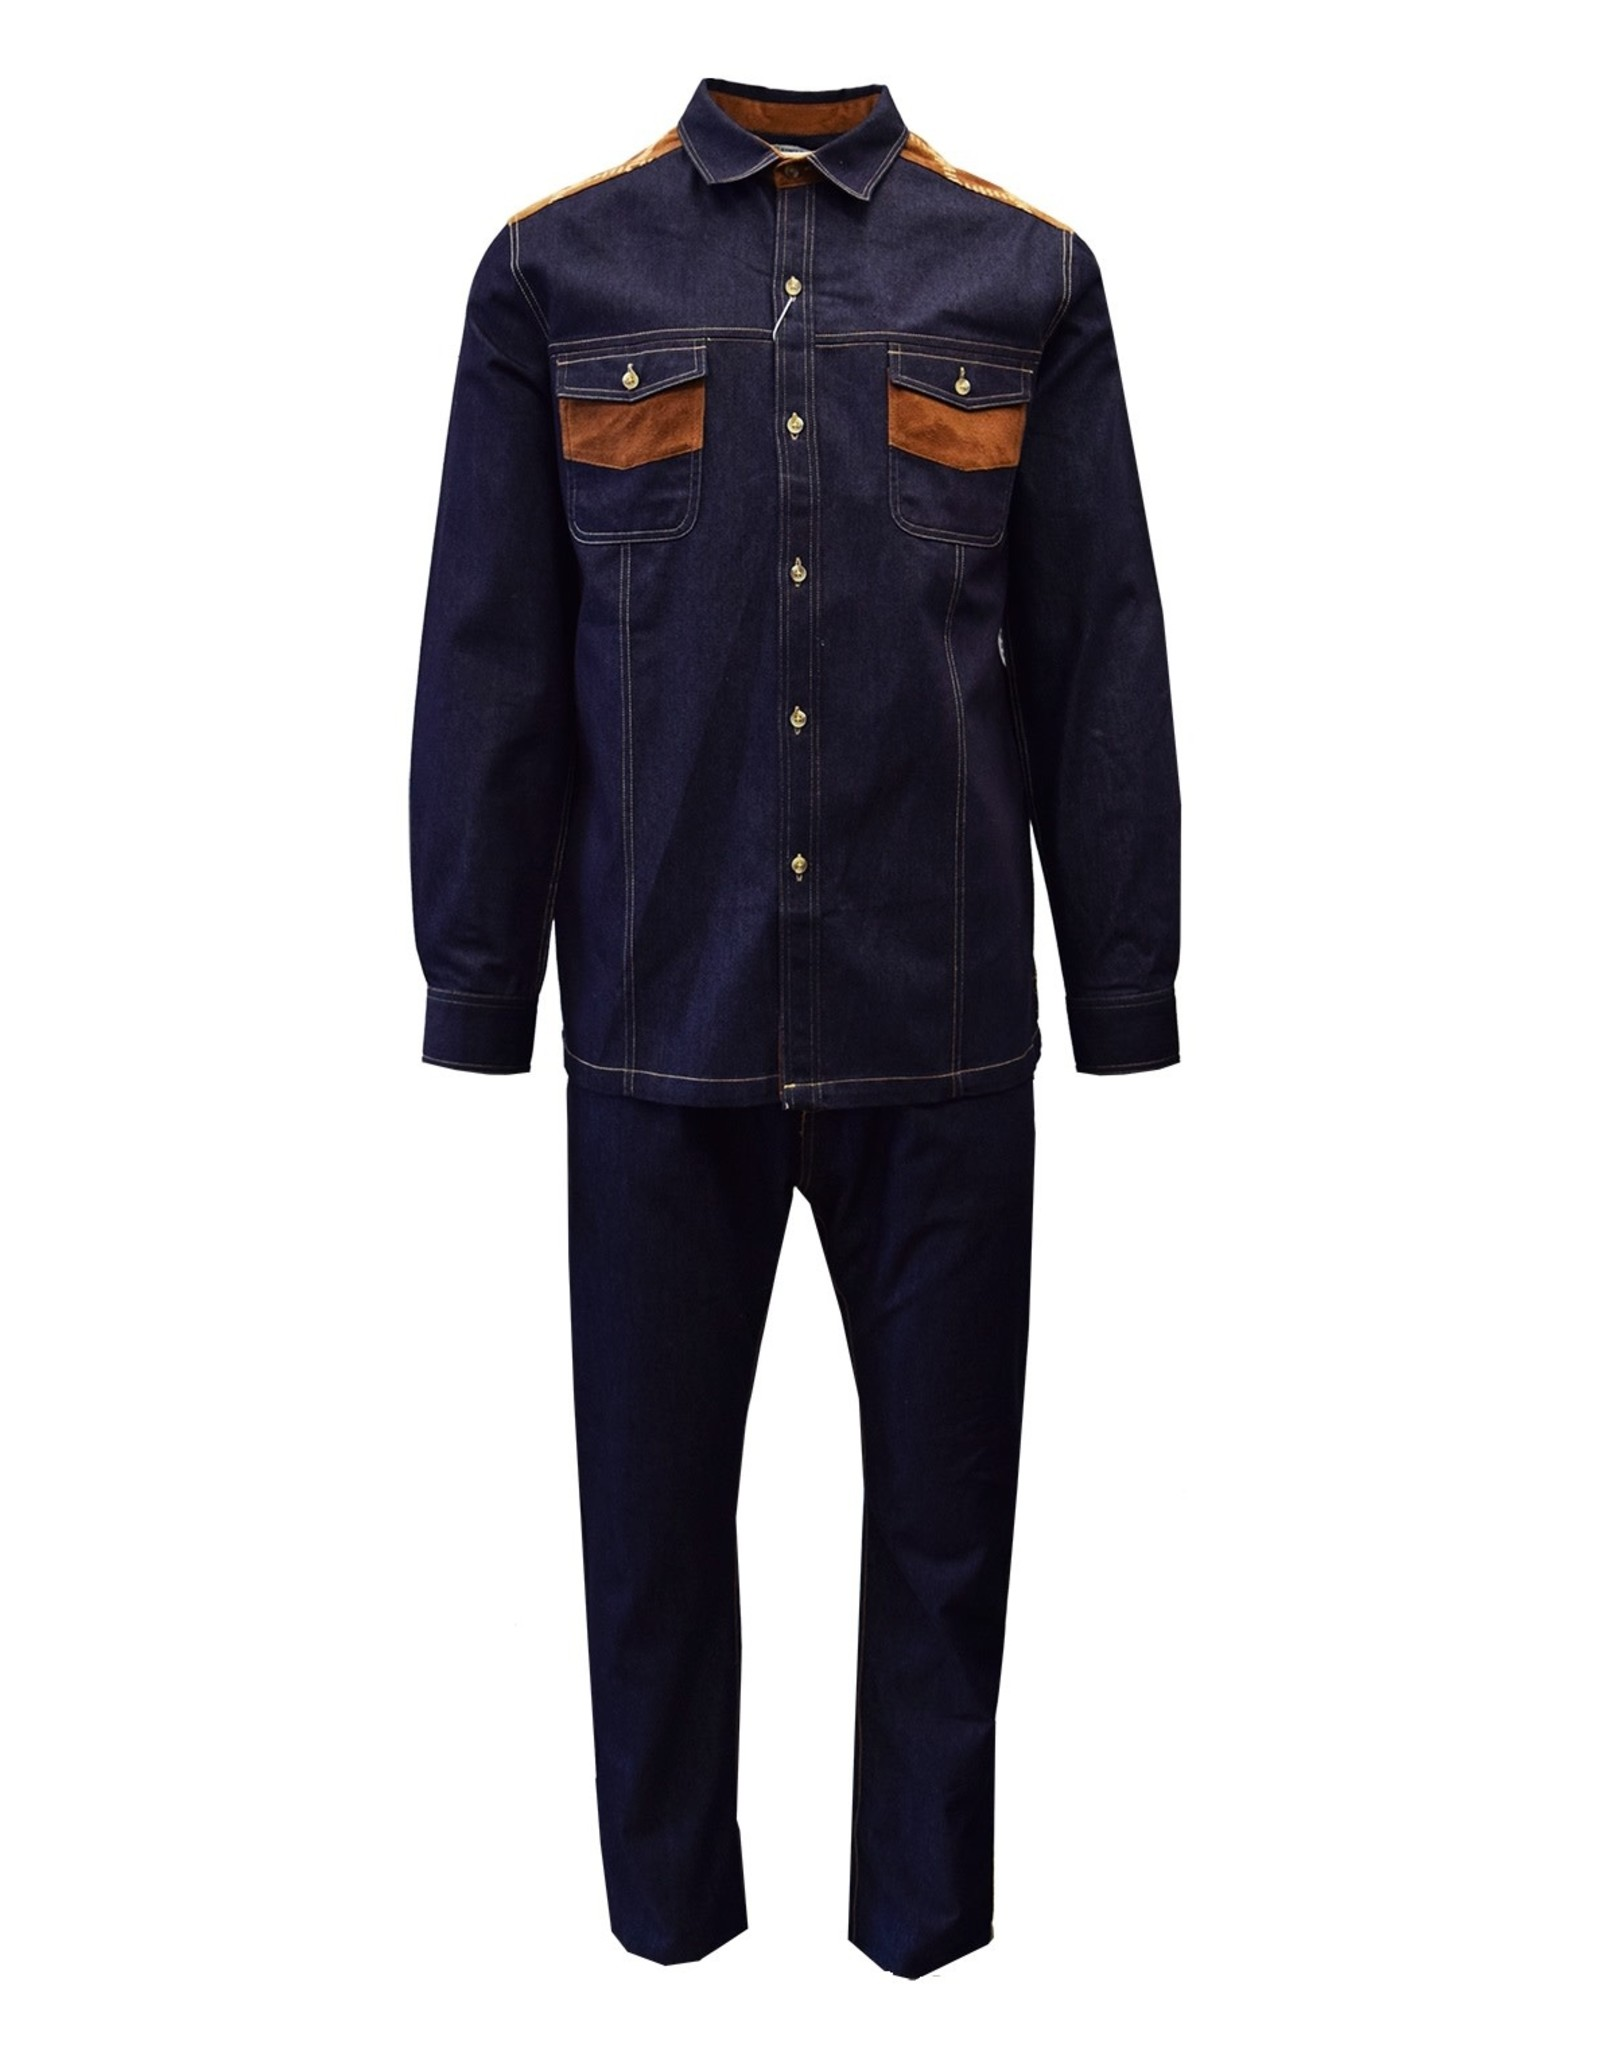 Stacy Adam Stacy Adams Denim Set - 1528 Indigo Blue